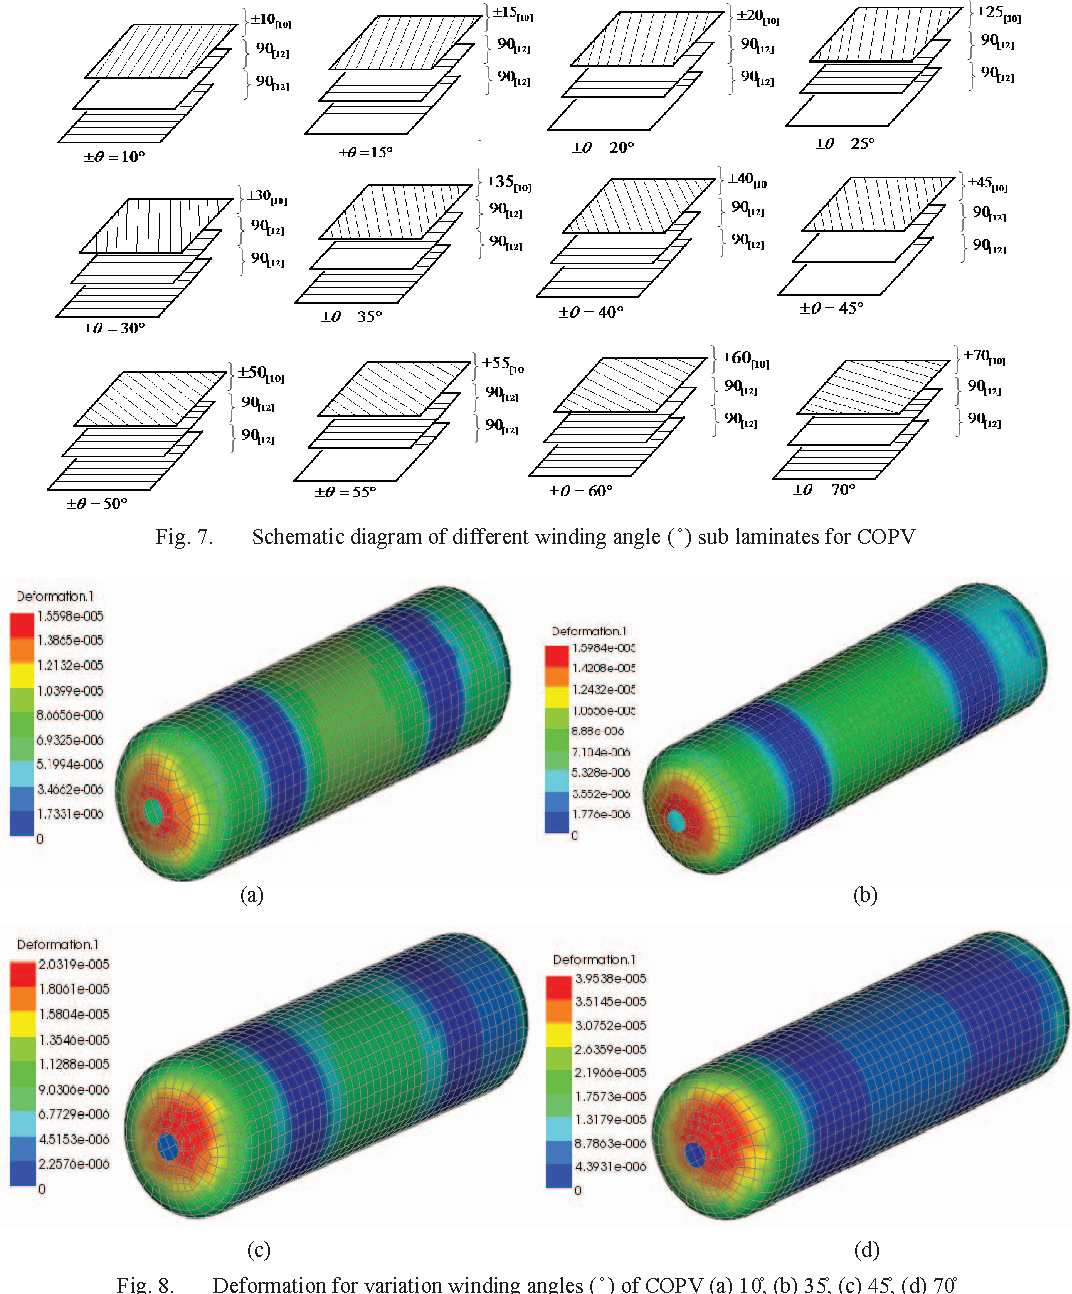 an analysis of the element hydrogen Díaz et al performed finite element analysis of the coupling mechanisms between the hydrogen diffusion and the plastic deformation with strain rate effect martínez-pañeda et al [21] used the strain gradient plasticity theory to study the hydrogen diffusion mechanisms at the small-scale crack tip.